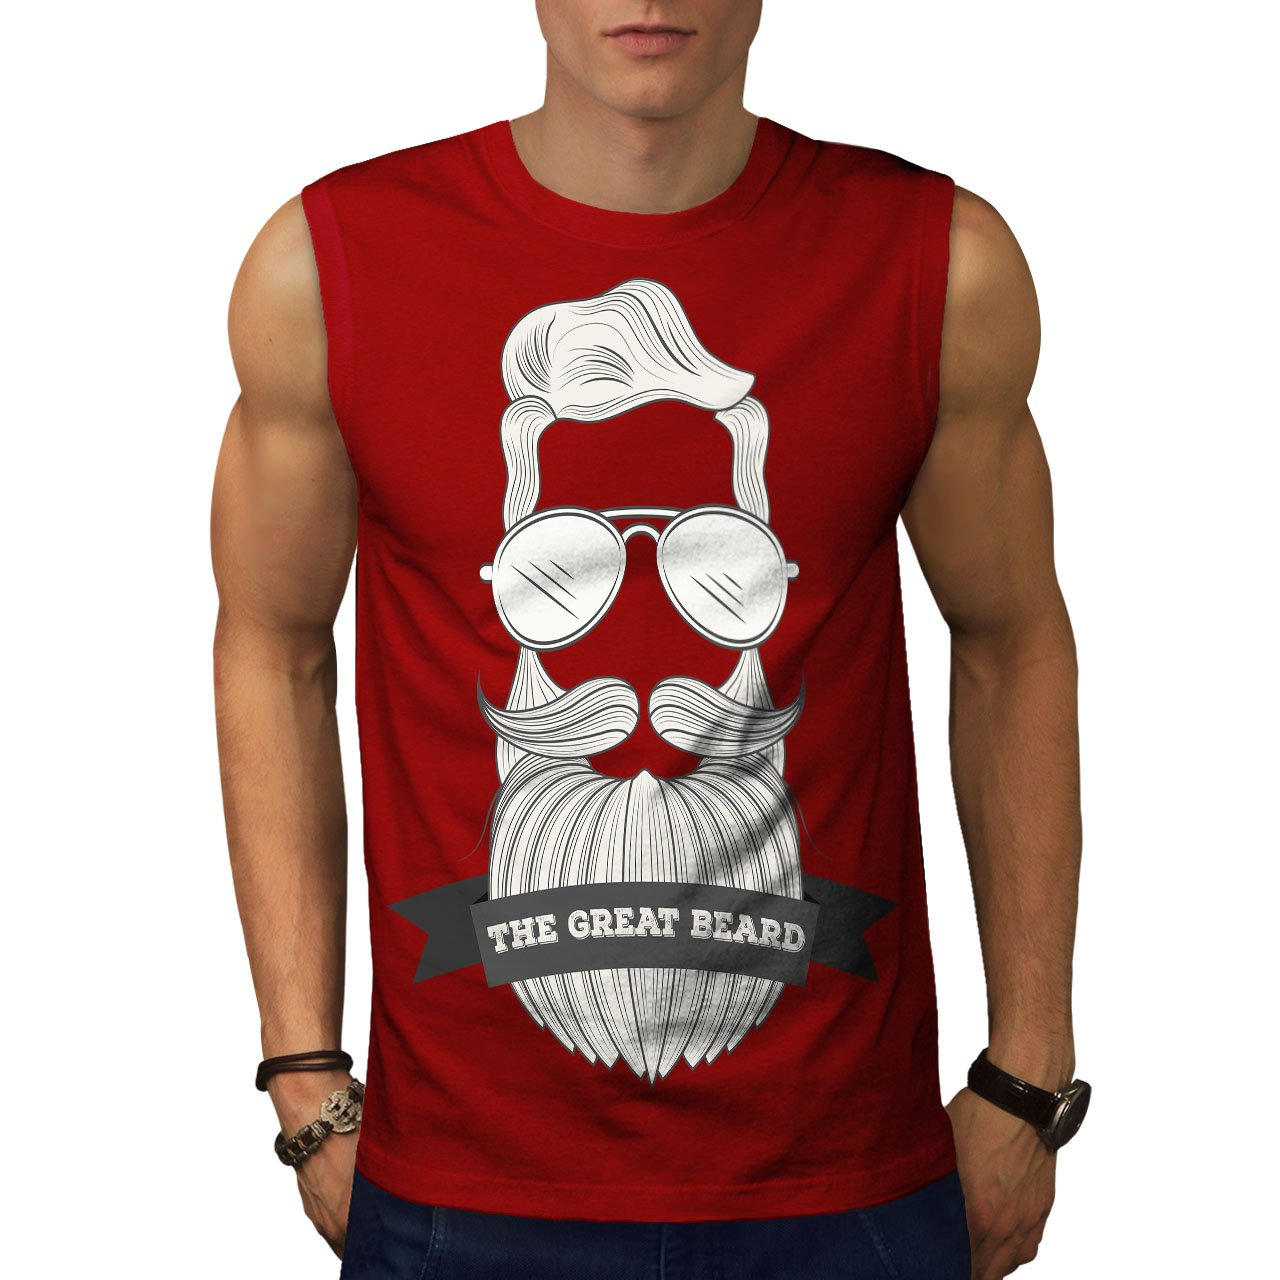 Wellcoda Hipster Beard Fashion Mens Sleevless T-shirt, Hairy Active Top Shirt